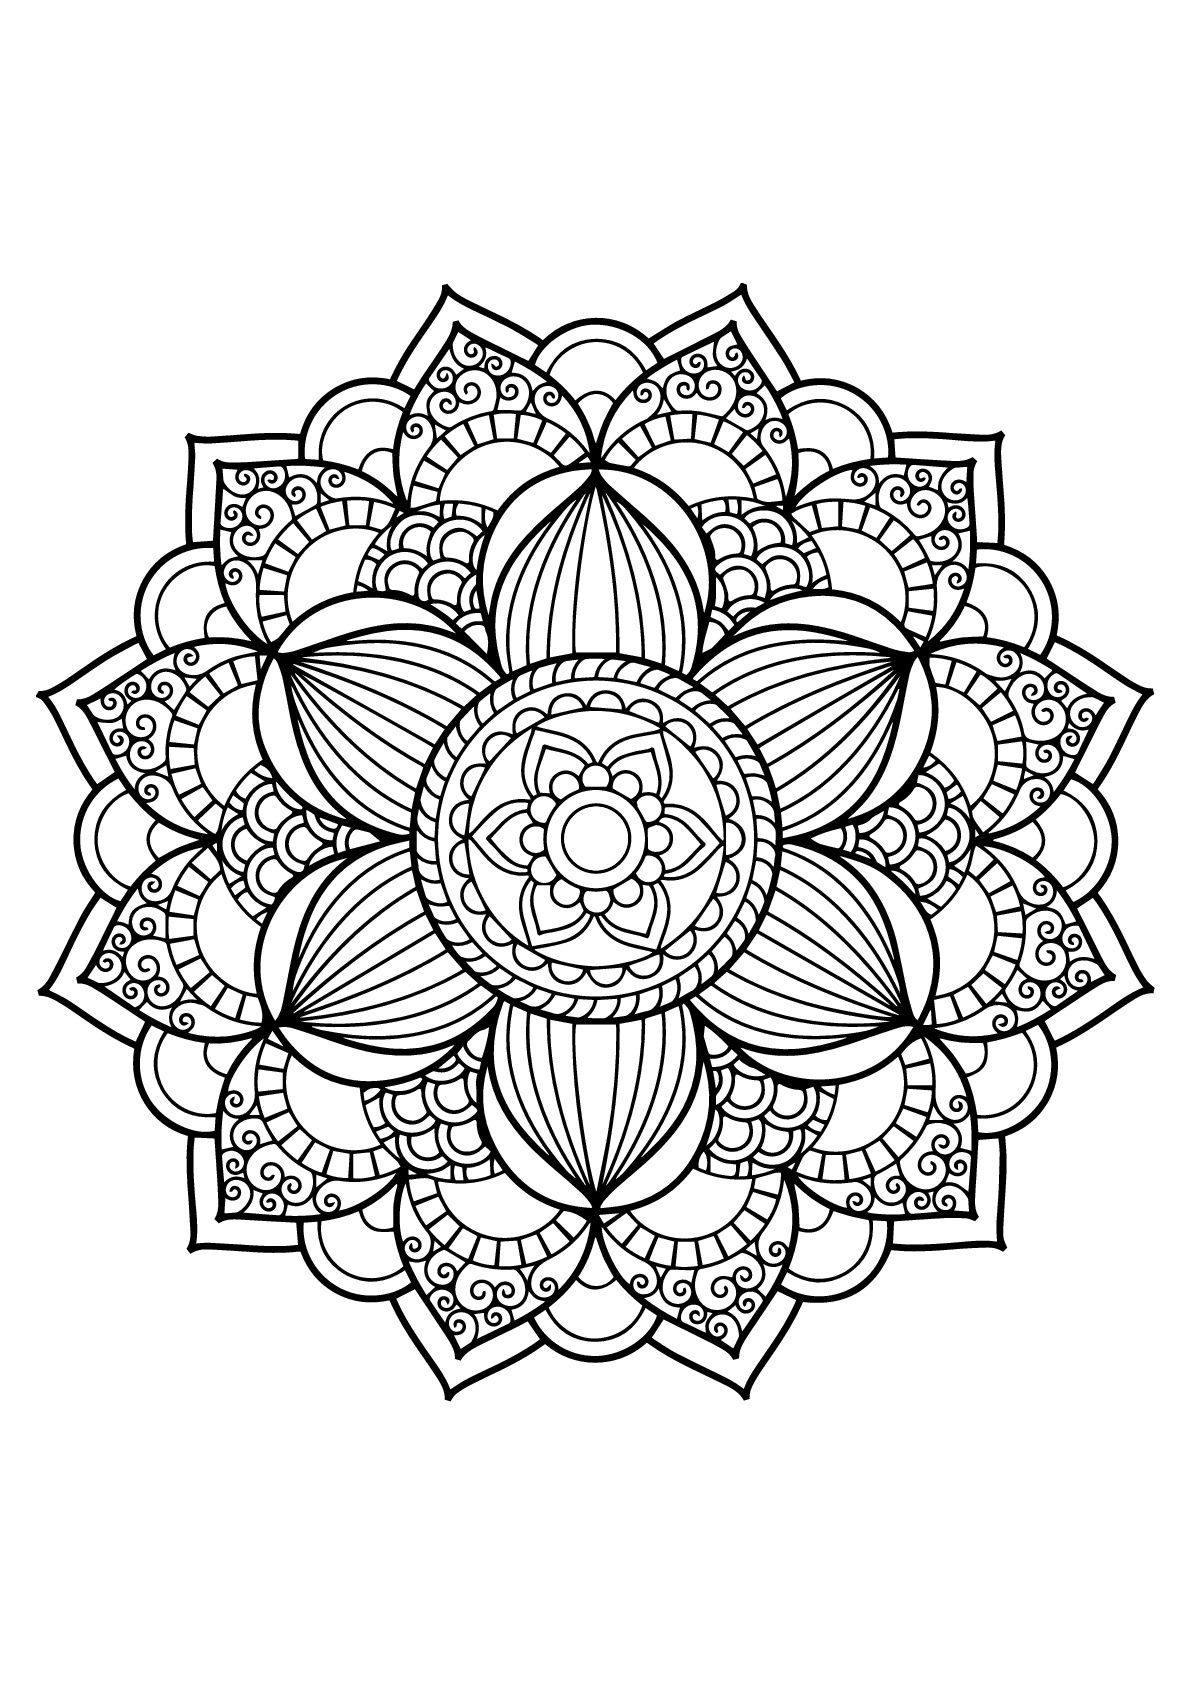 Here Are Difficult Mandalas Coloring Pages For Adults To Print For Free Mandala Is A Sans Mandala Coloring Pages Abstract Coloring Pages Flower Coloring Pages